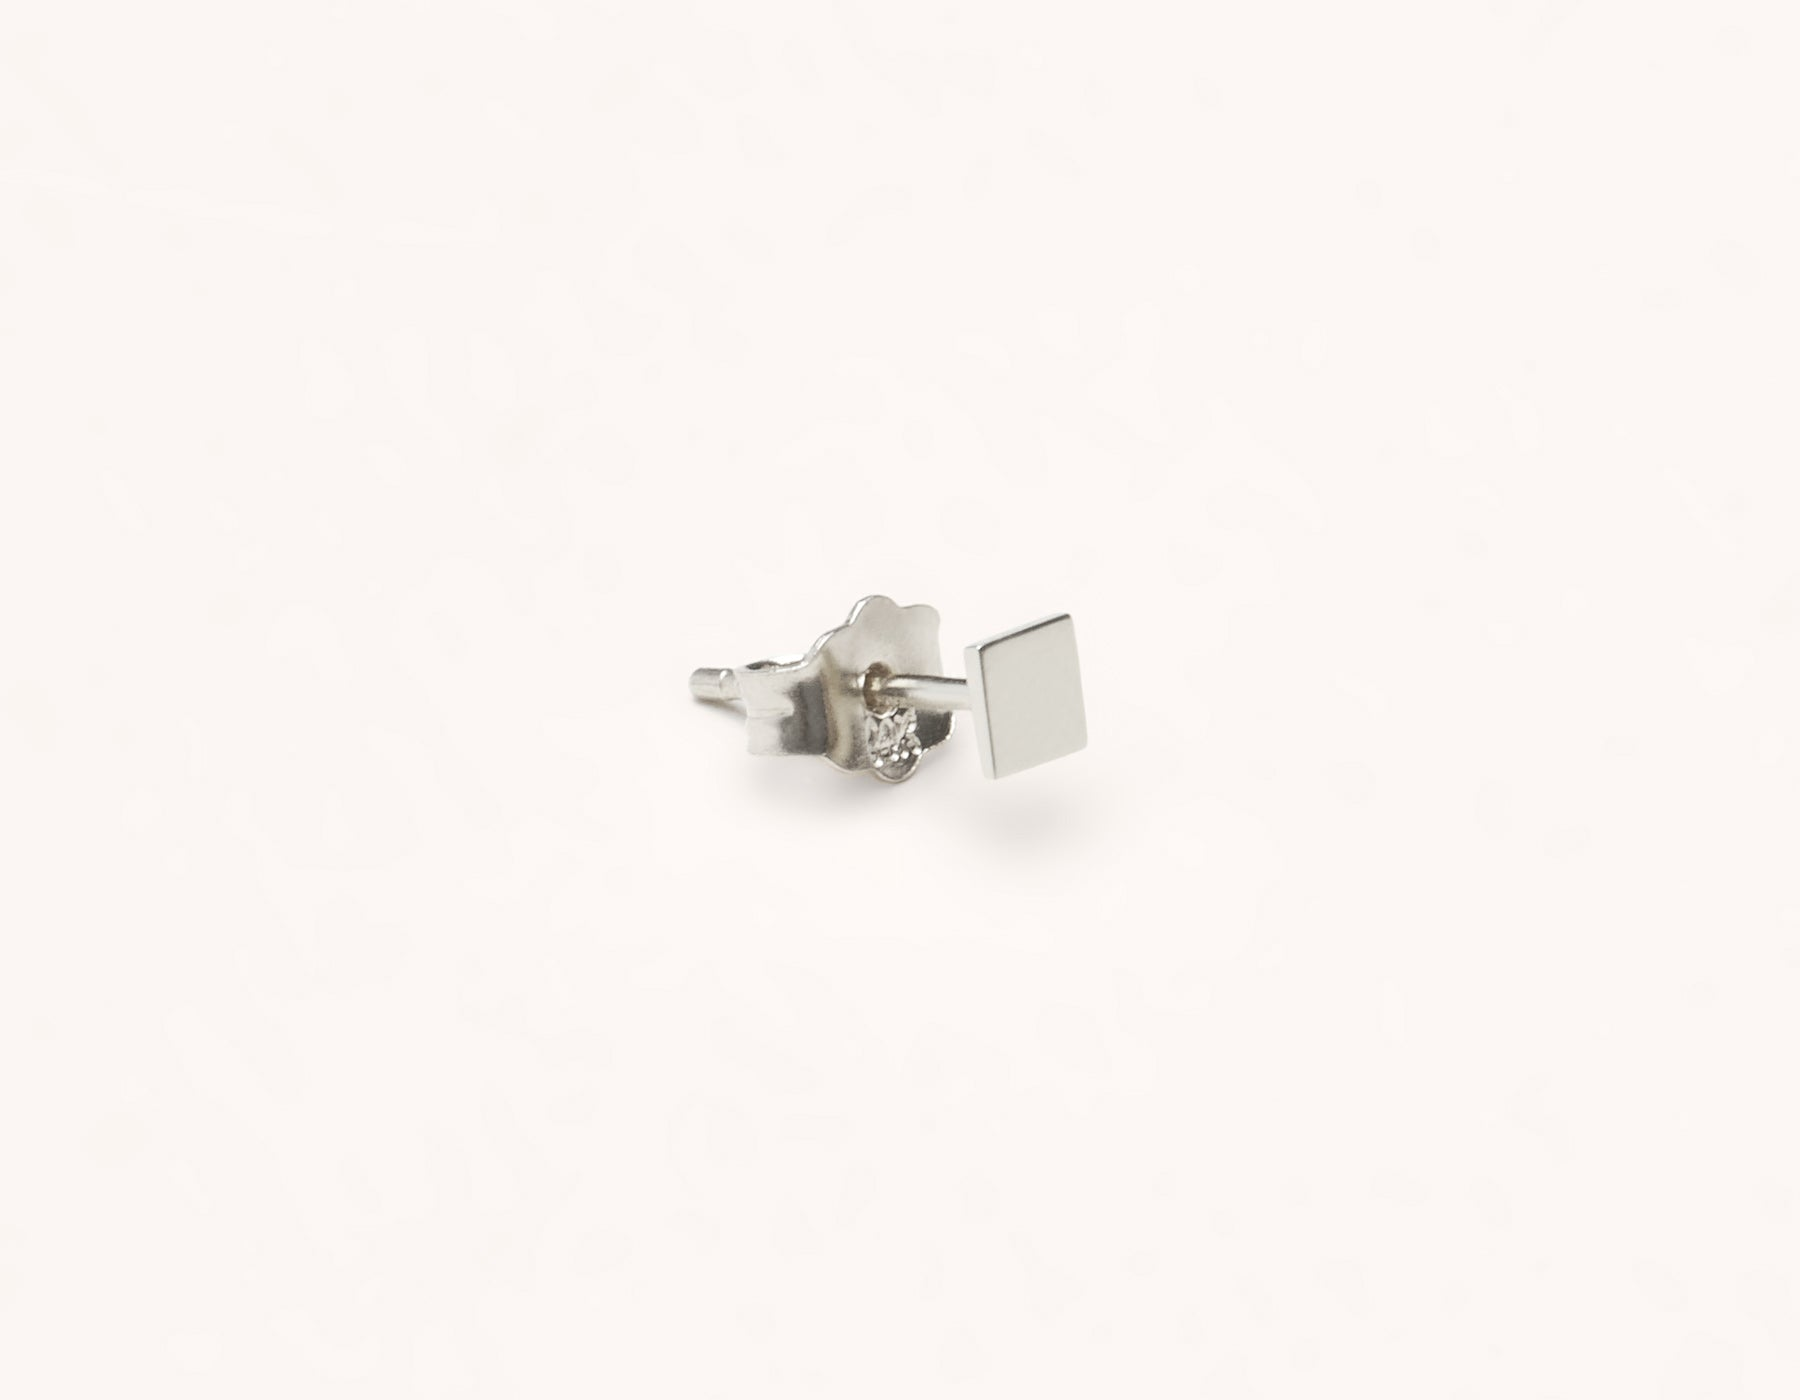 Basic subtle Square Stud earring 14k solid gold Vrai & Oro versatile jewelry, 14K White Gold